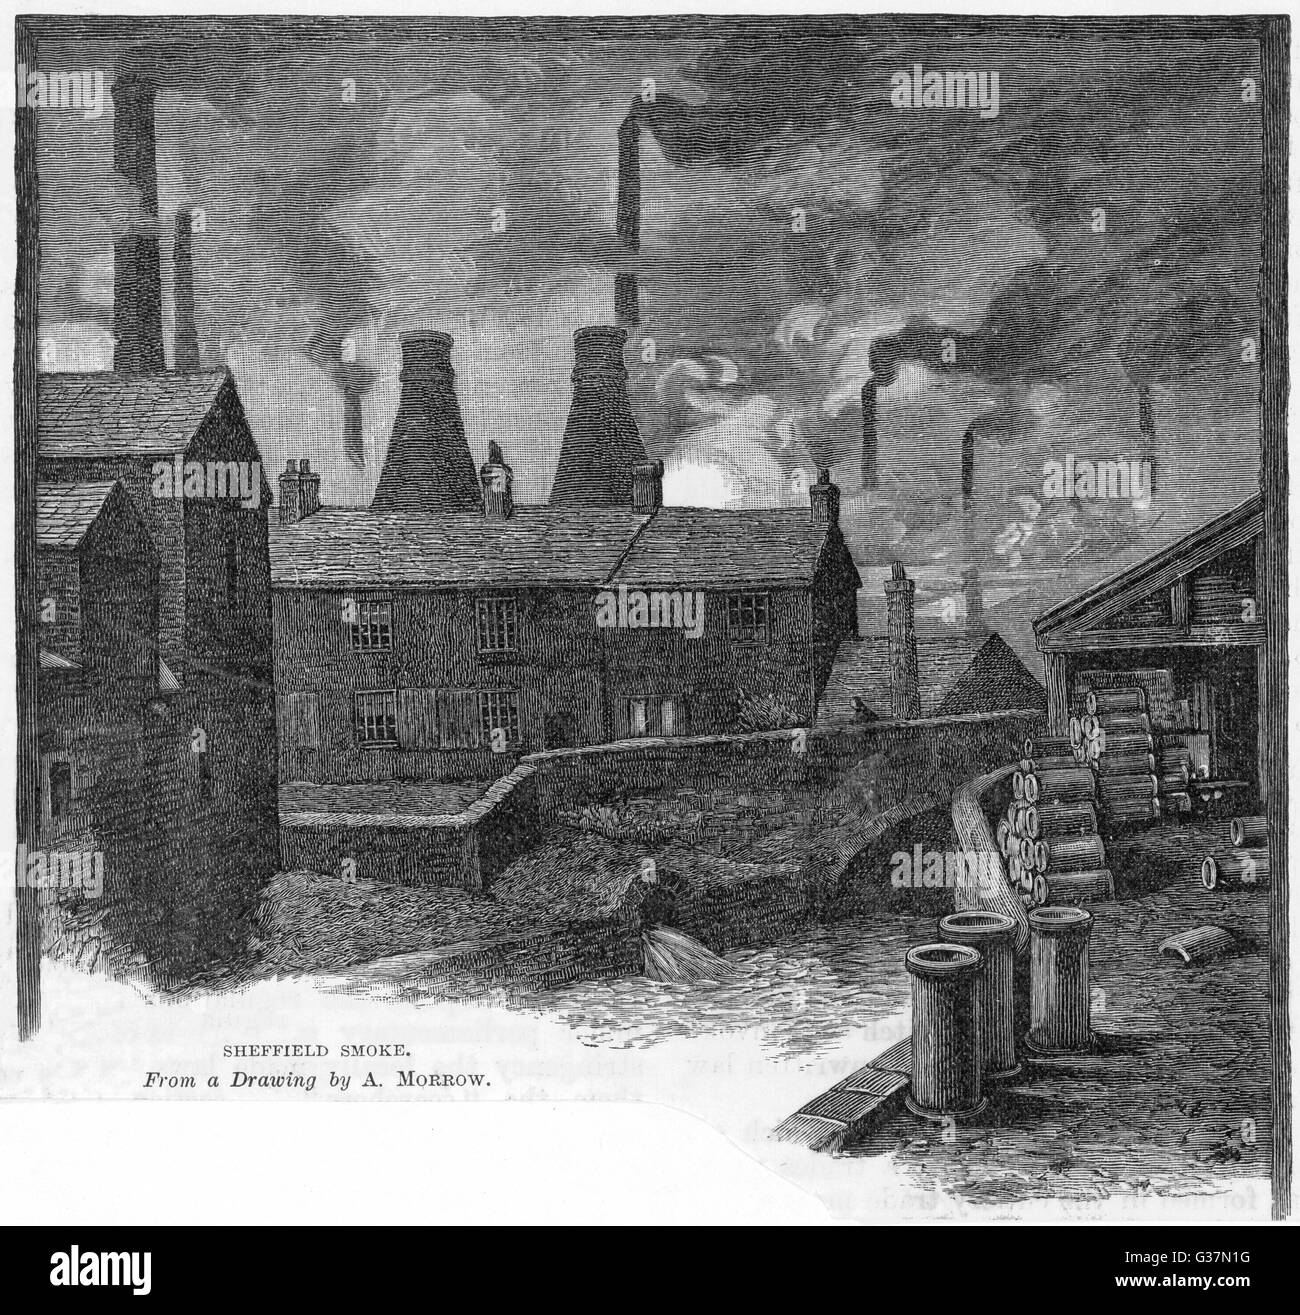 'SHEFFIELD SMOKE' factories at Sheffield,  Yorkshire (England)        Date: 1885 - Stock Image